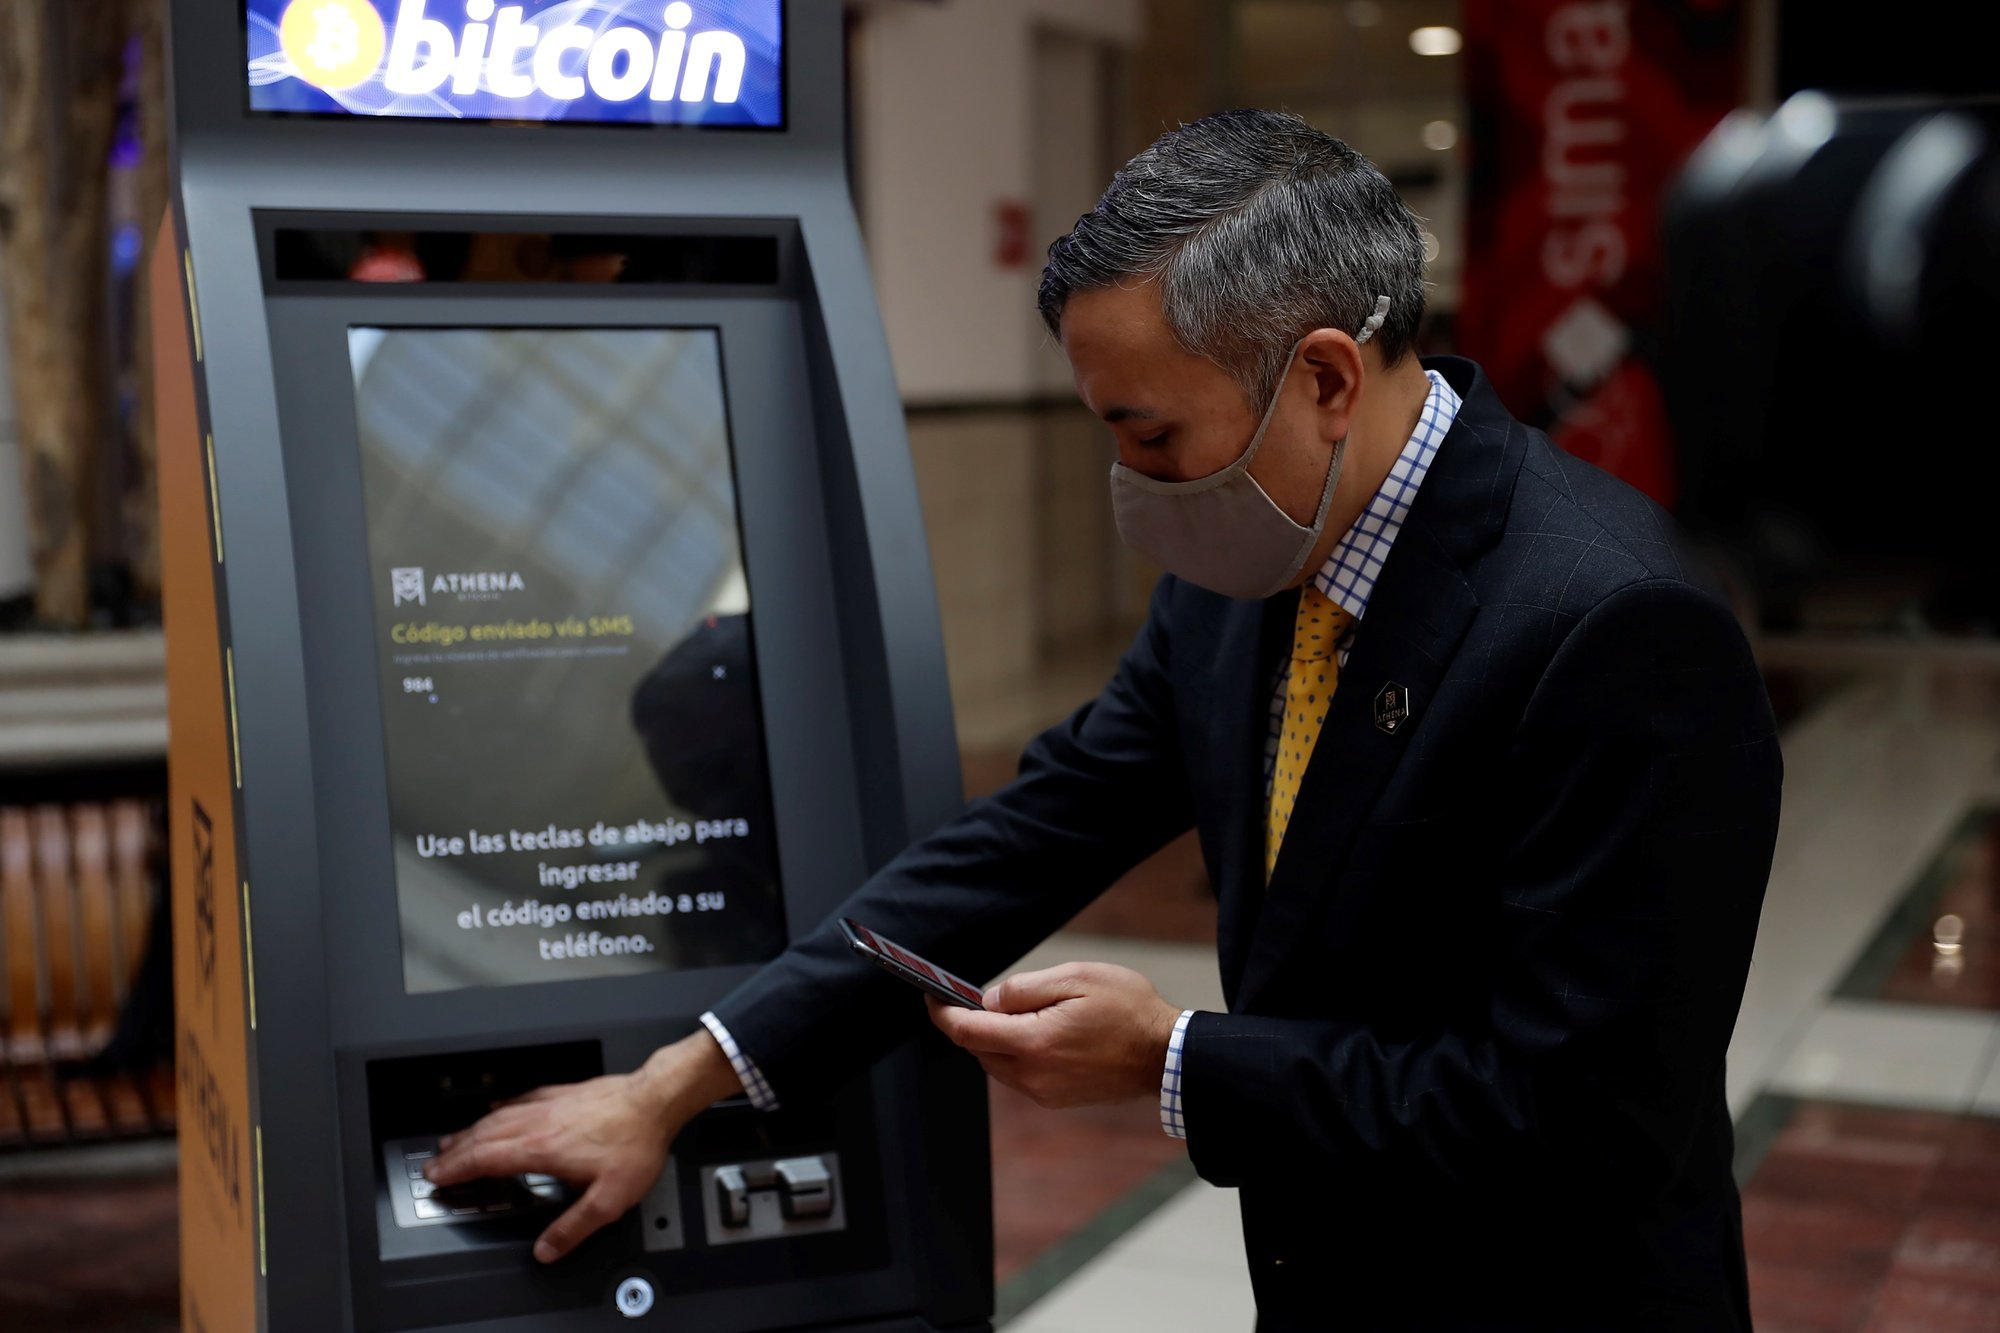 epa09299465 Eric Gravengaard, CEO and founder of the Anthena Bitcoin company, performs an operation at the new ATM for bitcoin transactions, in a shopping center in San Salvador, El Salvador, 24 June 2021. The US company Athena Bitcoin began the process of installing ATMs in El Salvador to carry out different operations of the cryptocurrency bitcoin. The ATM, which is the second in the Central American country after the one installed more than a year ago in the El Zonte tourist beach, is located in a shopping center in the central department of La Libertad.  EPA/Rodrigo Sura